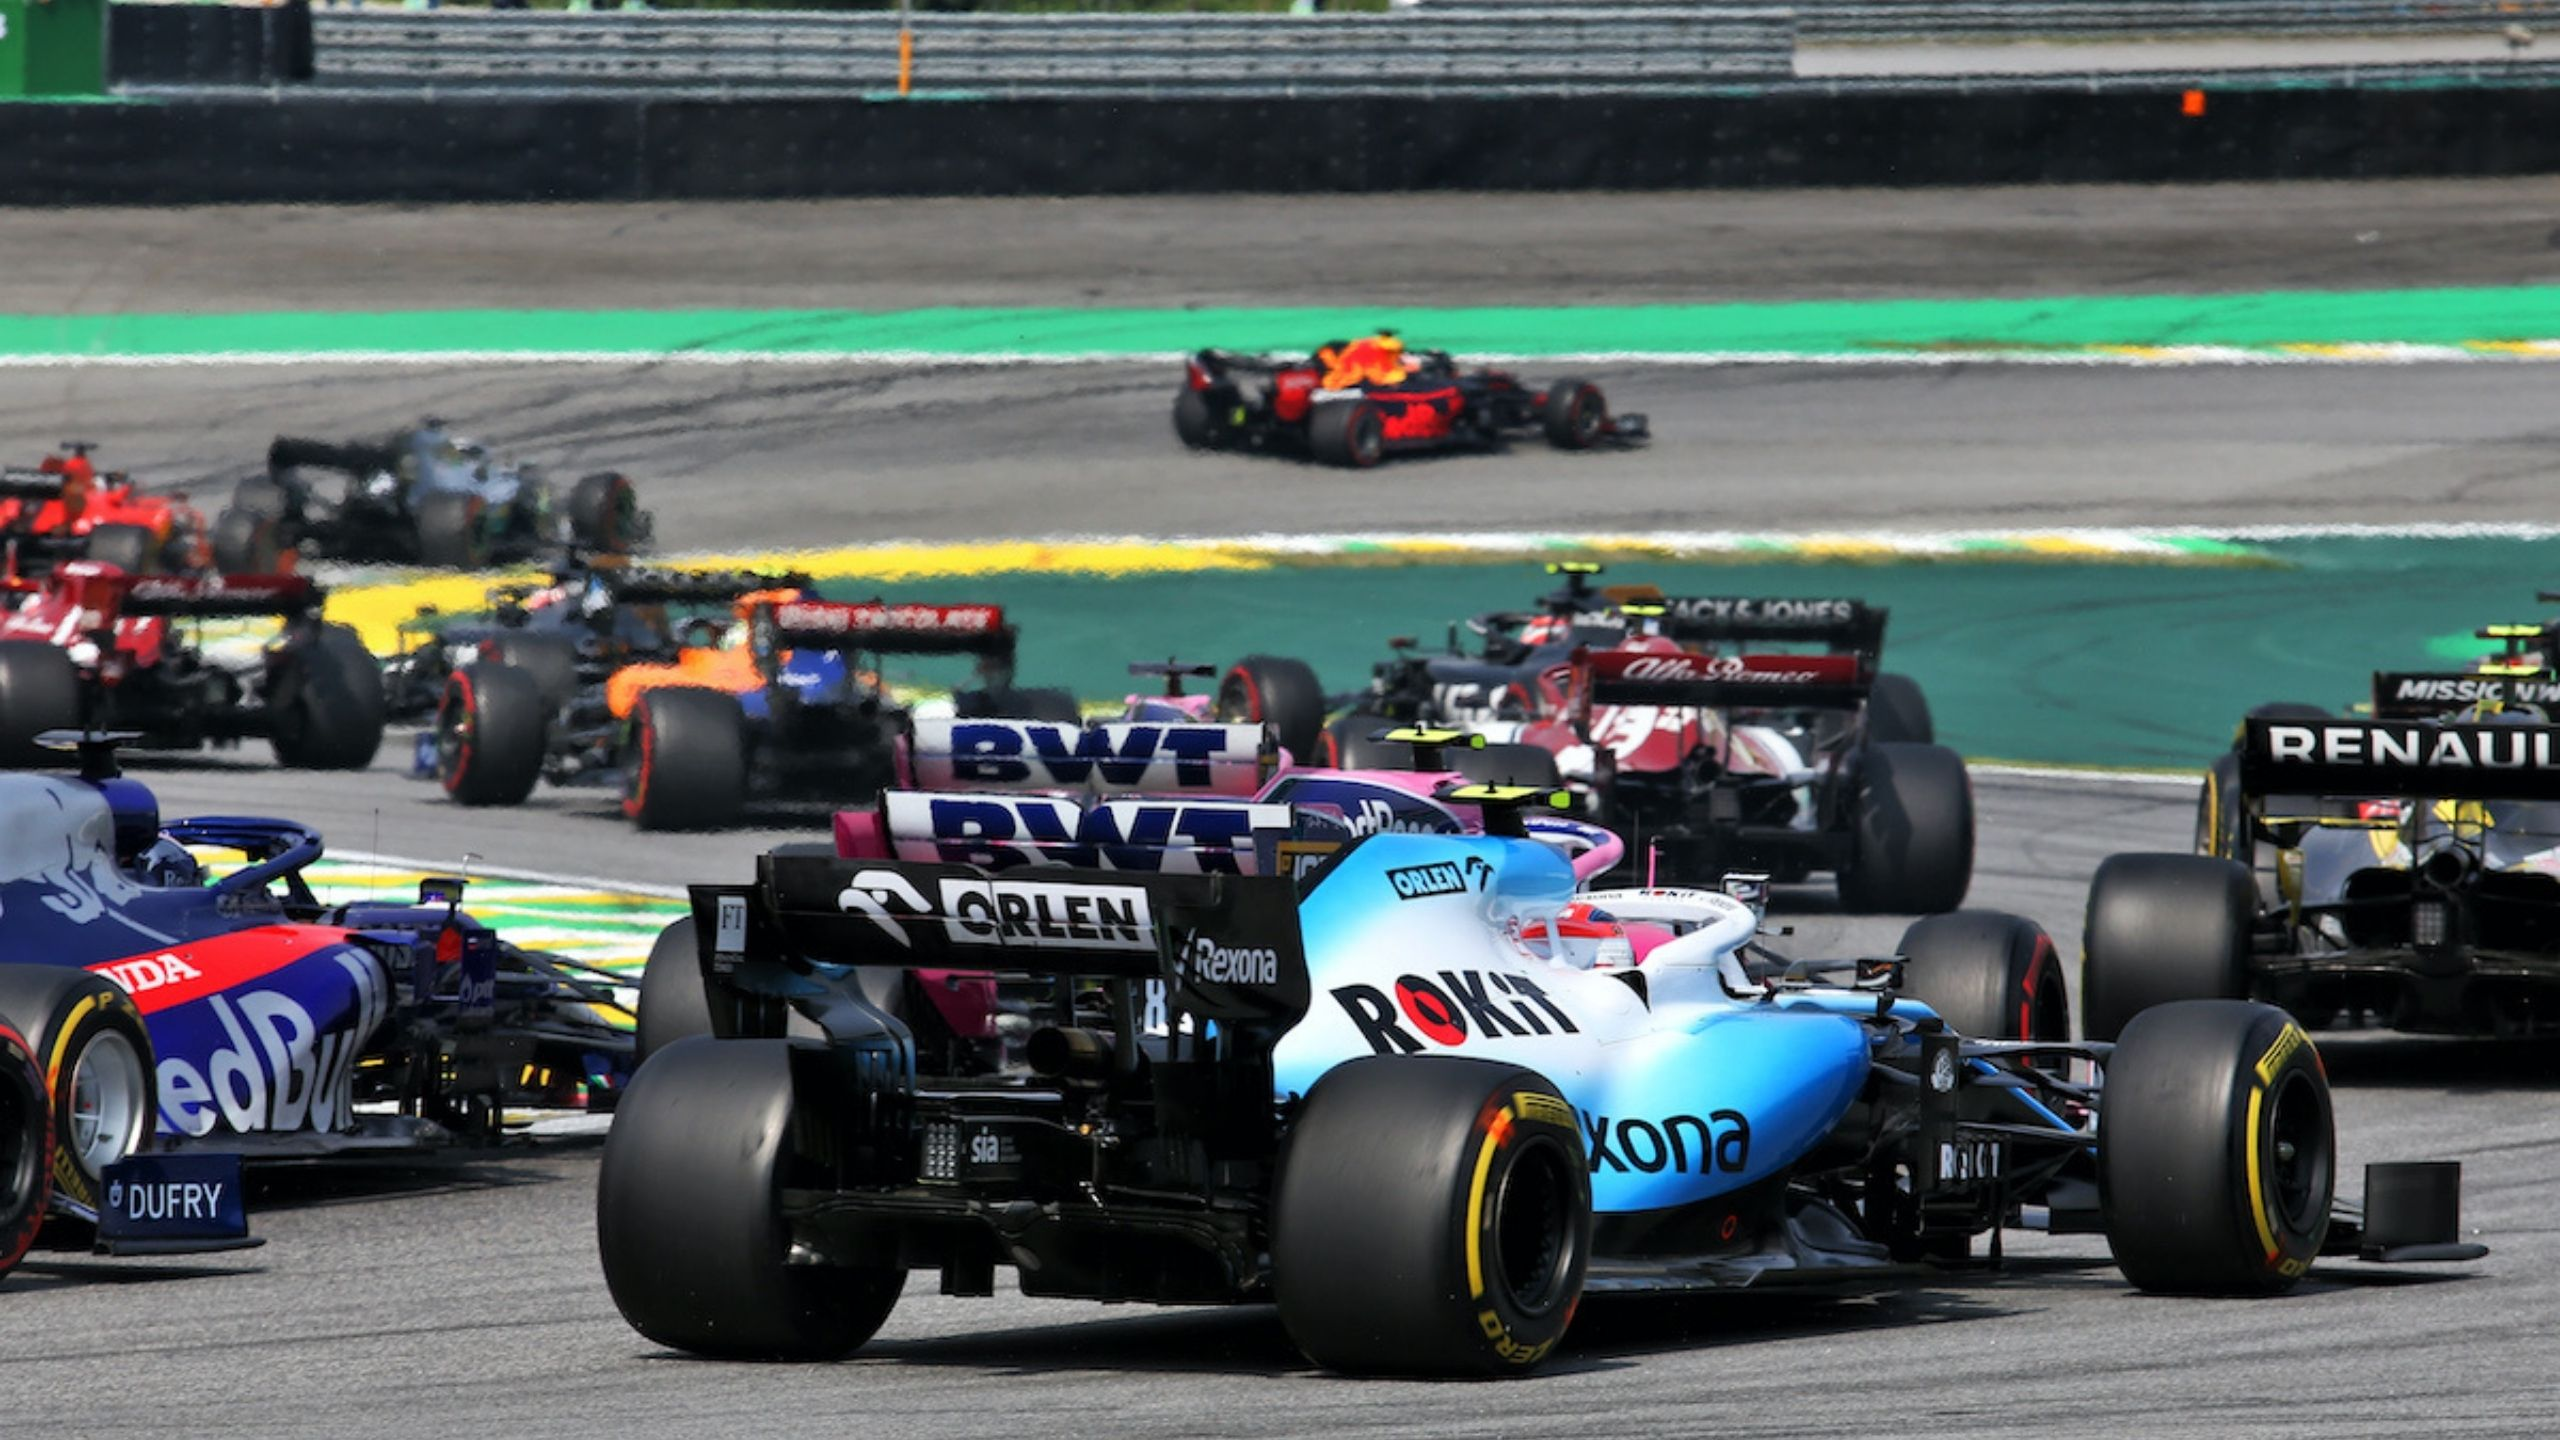 Reverse Grid F1: F1 MD Ross Brawn frustrated after reverse grid proposal is rejected by the F1 Commission